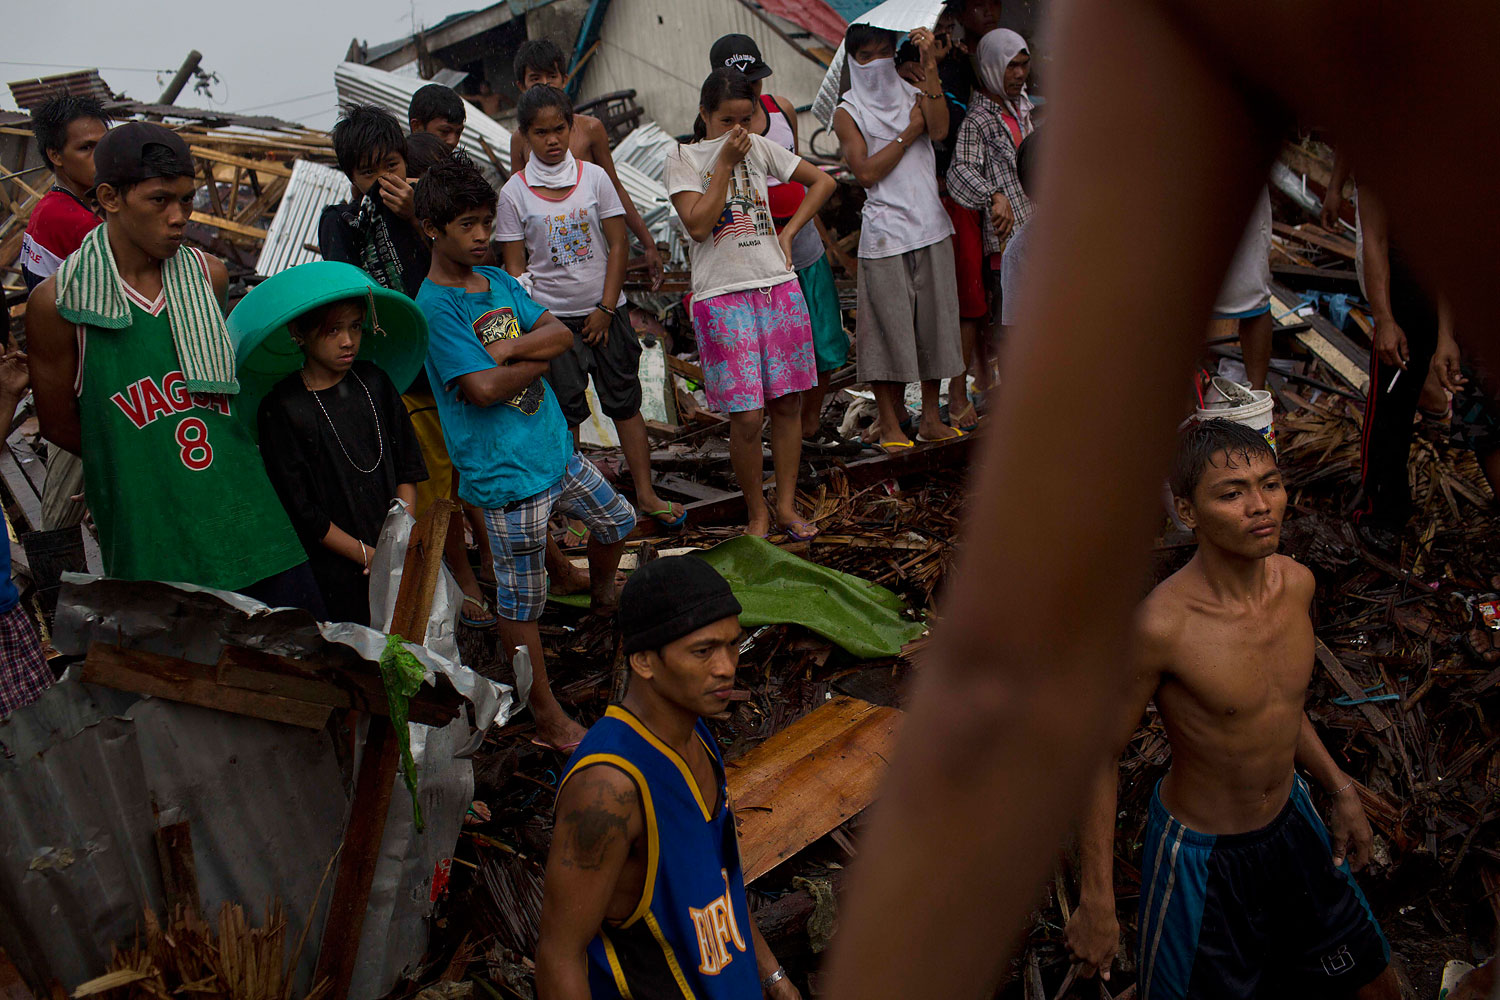 Typhoon Haiyan survivors stand in the rain and watch as people from their destroyed neighborhood search for dead bodies in the rubble in Tacloban, Philippines on November 22, 2013.